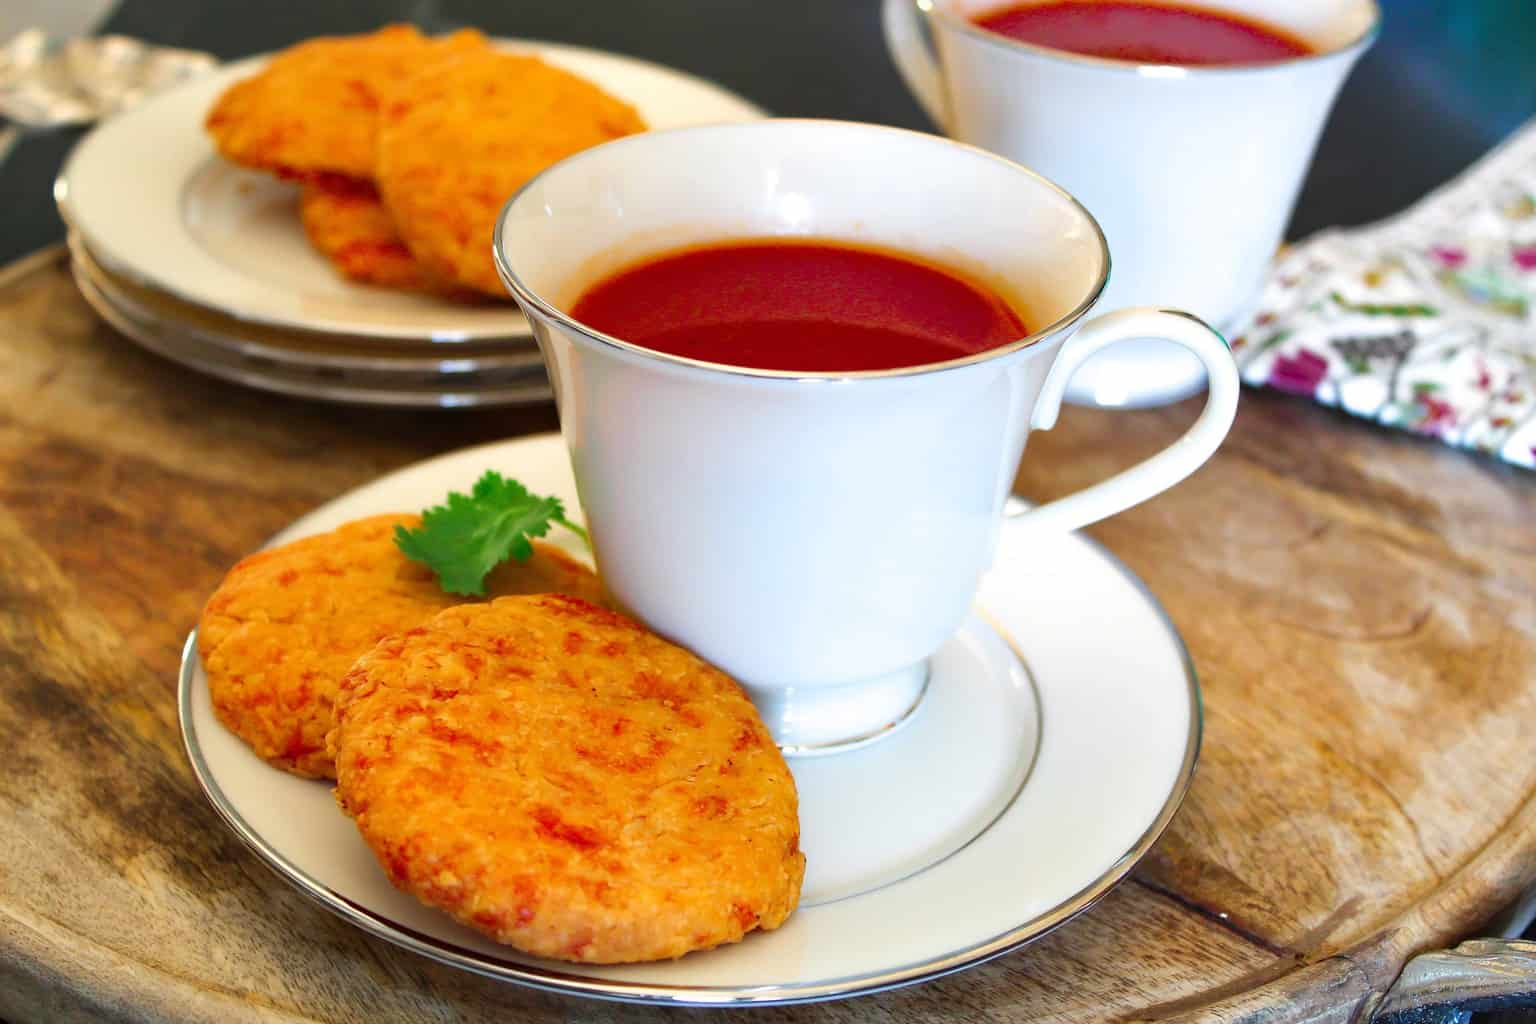 Non-Alcohol Southern Tomato Aperitif in a white china cup with two cheddar wafers on the saucer